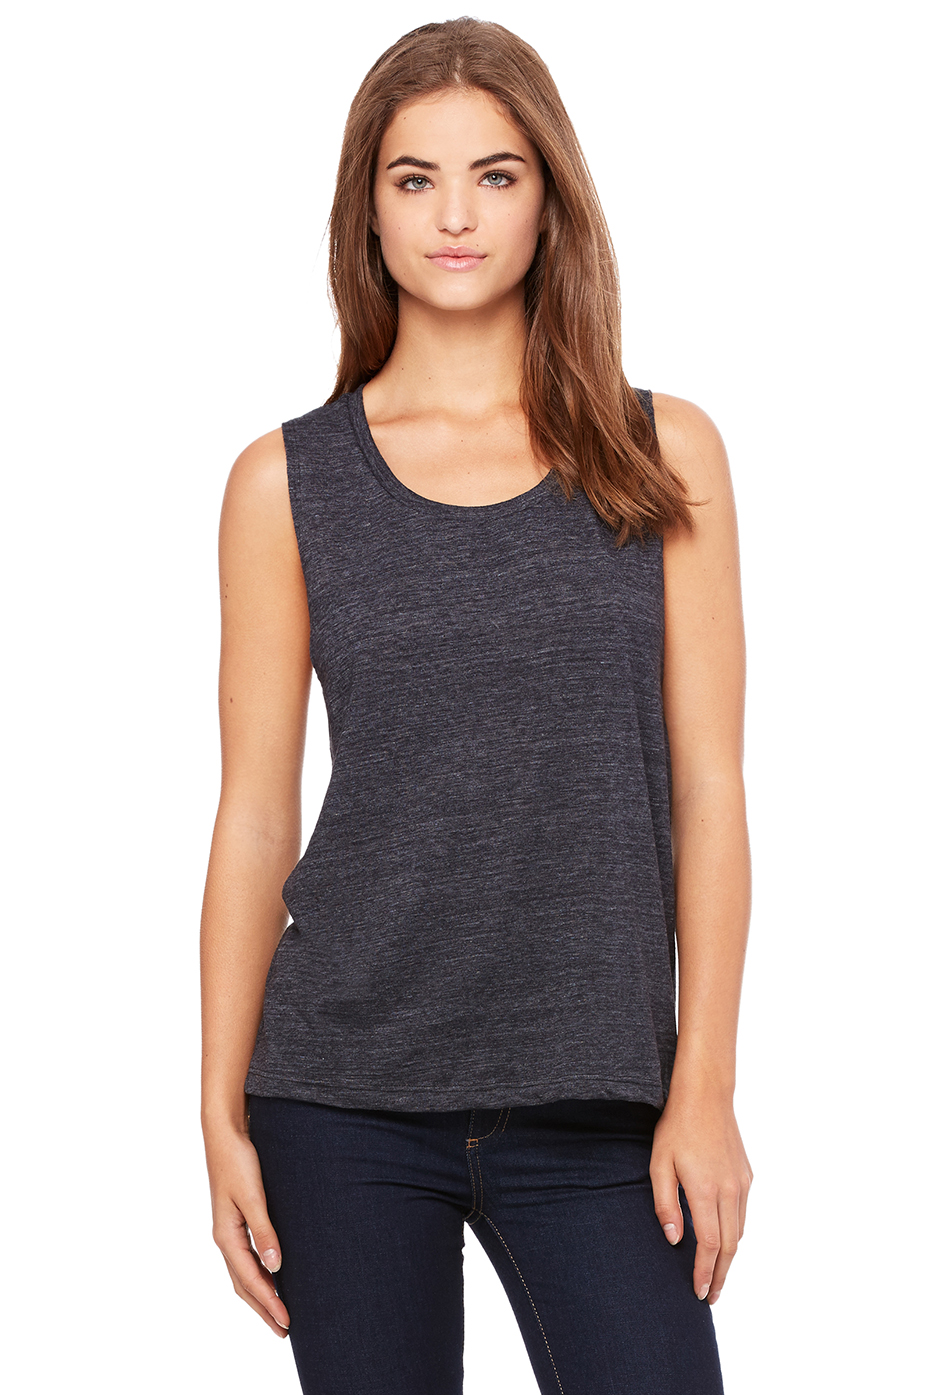 Shop for muscle tees womens online at Target. Free shipping on purchases over $35 and save 5% every day with your Target REDcard.